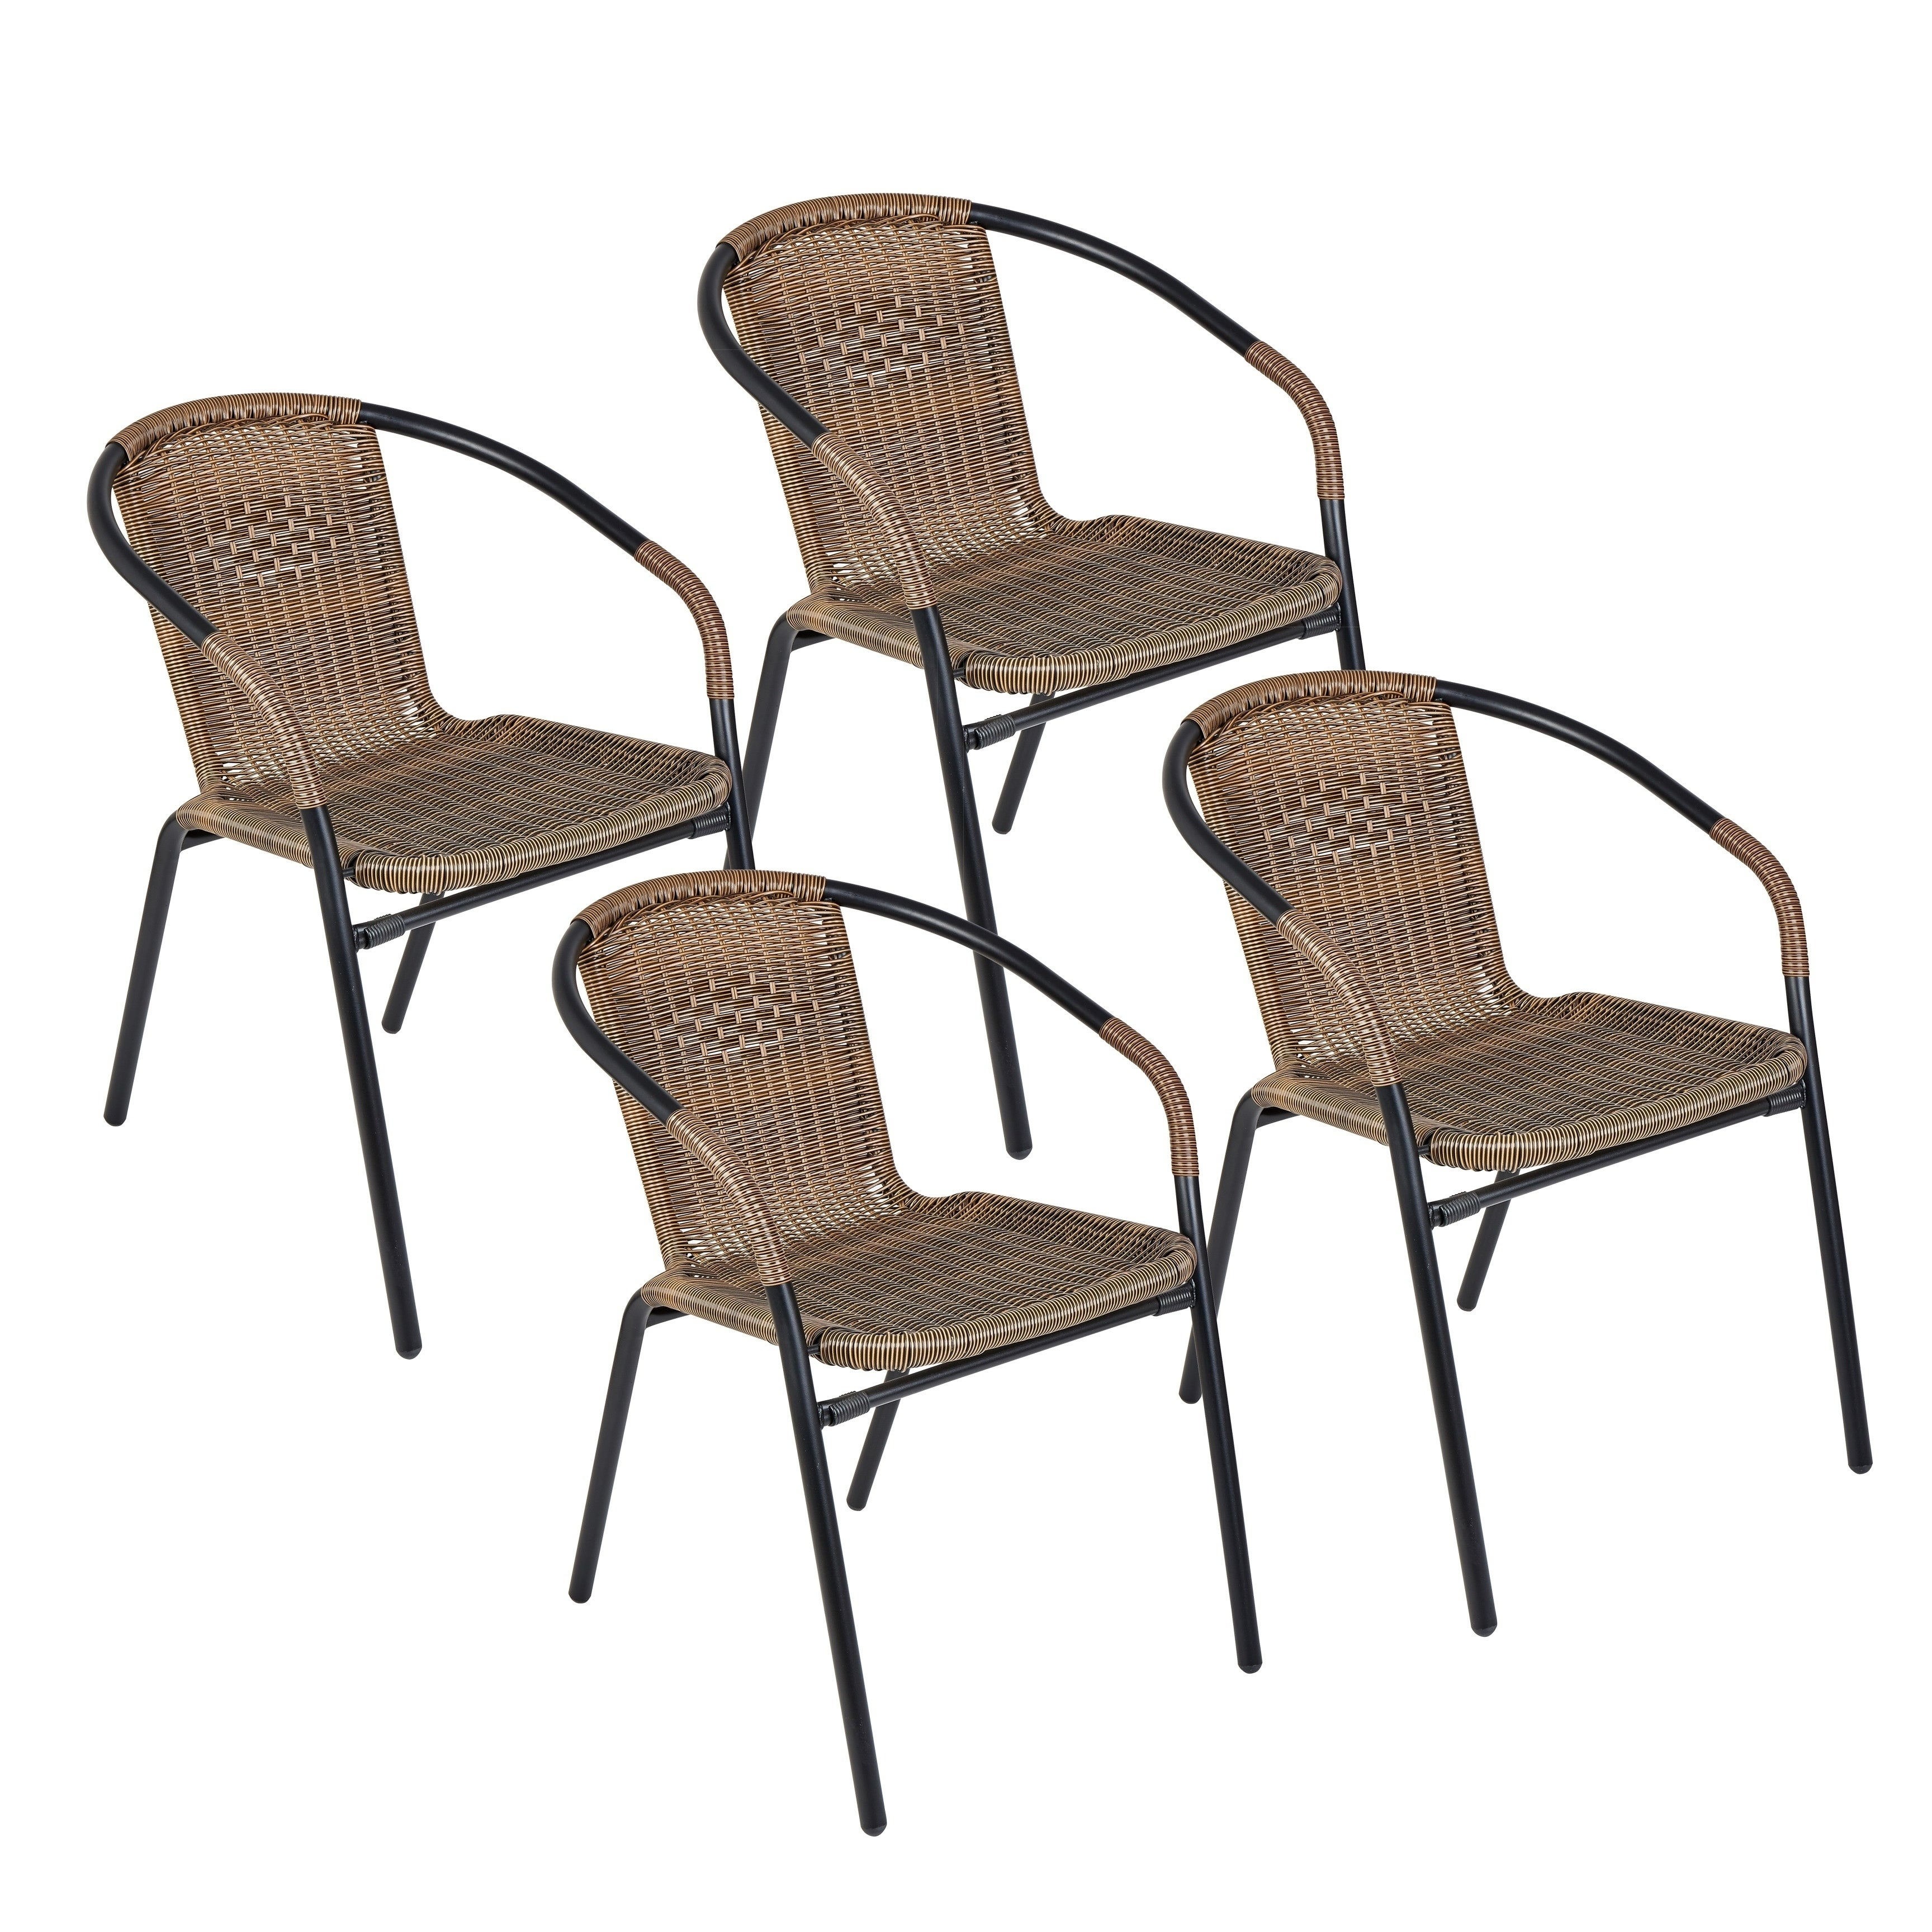 The Curated Nomad Clopin Indoor/Outdoor Rattan Chairs (Set of 4)